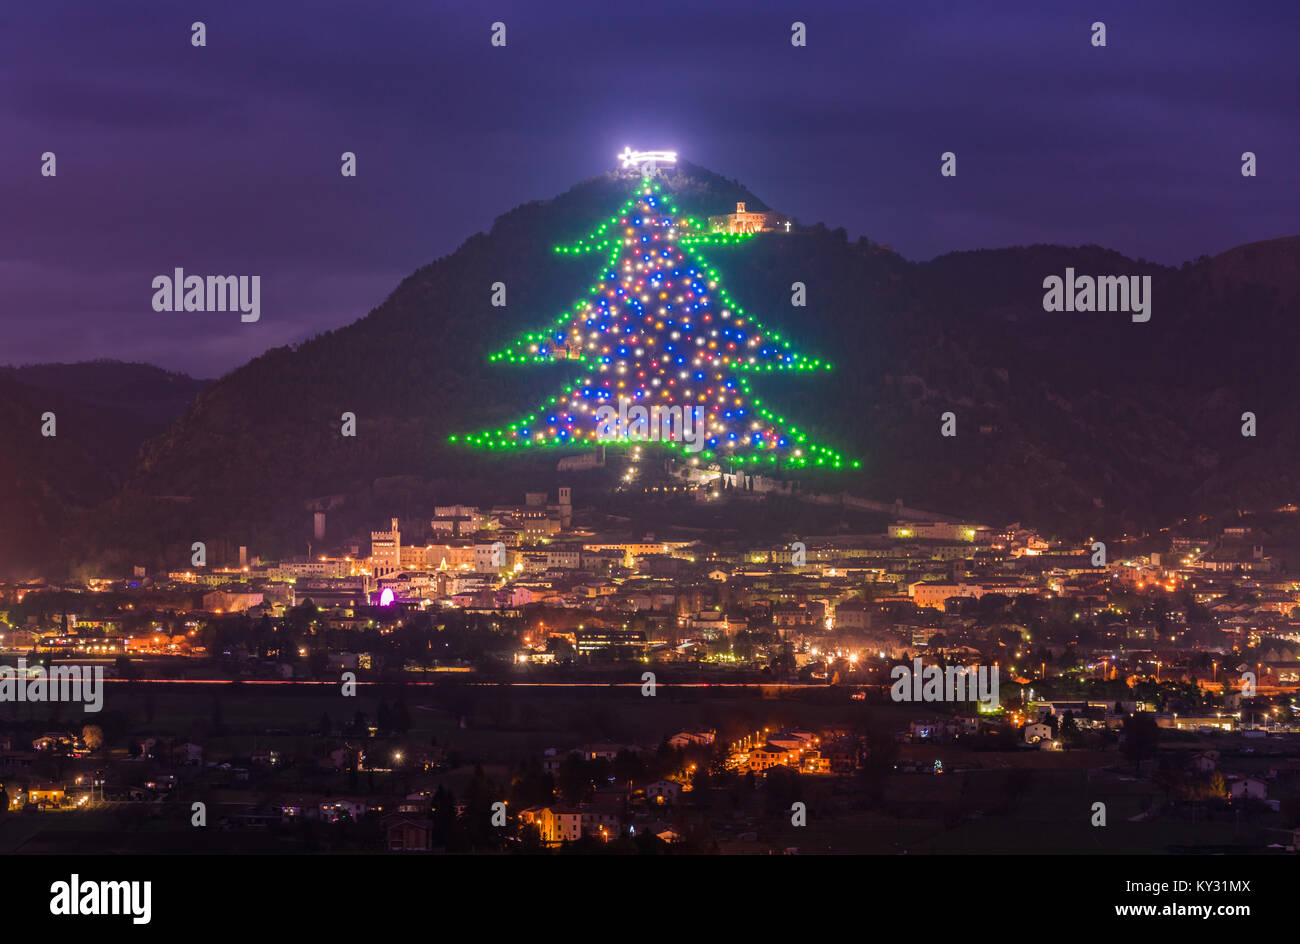 The Biggest Most Beautiful Christmas Tree